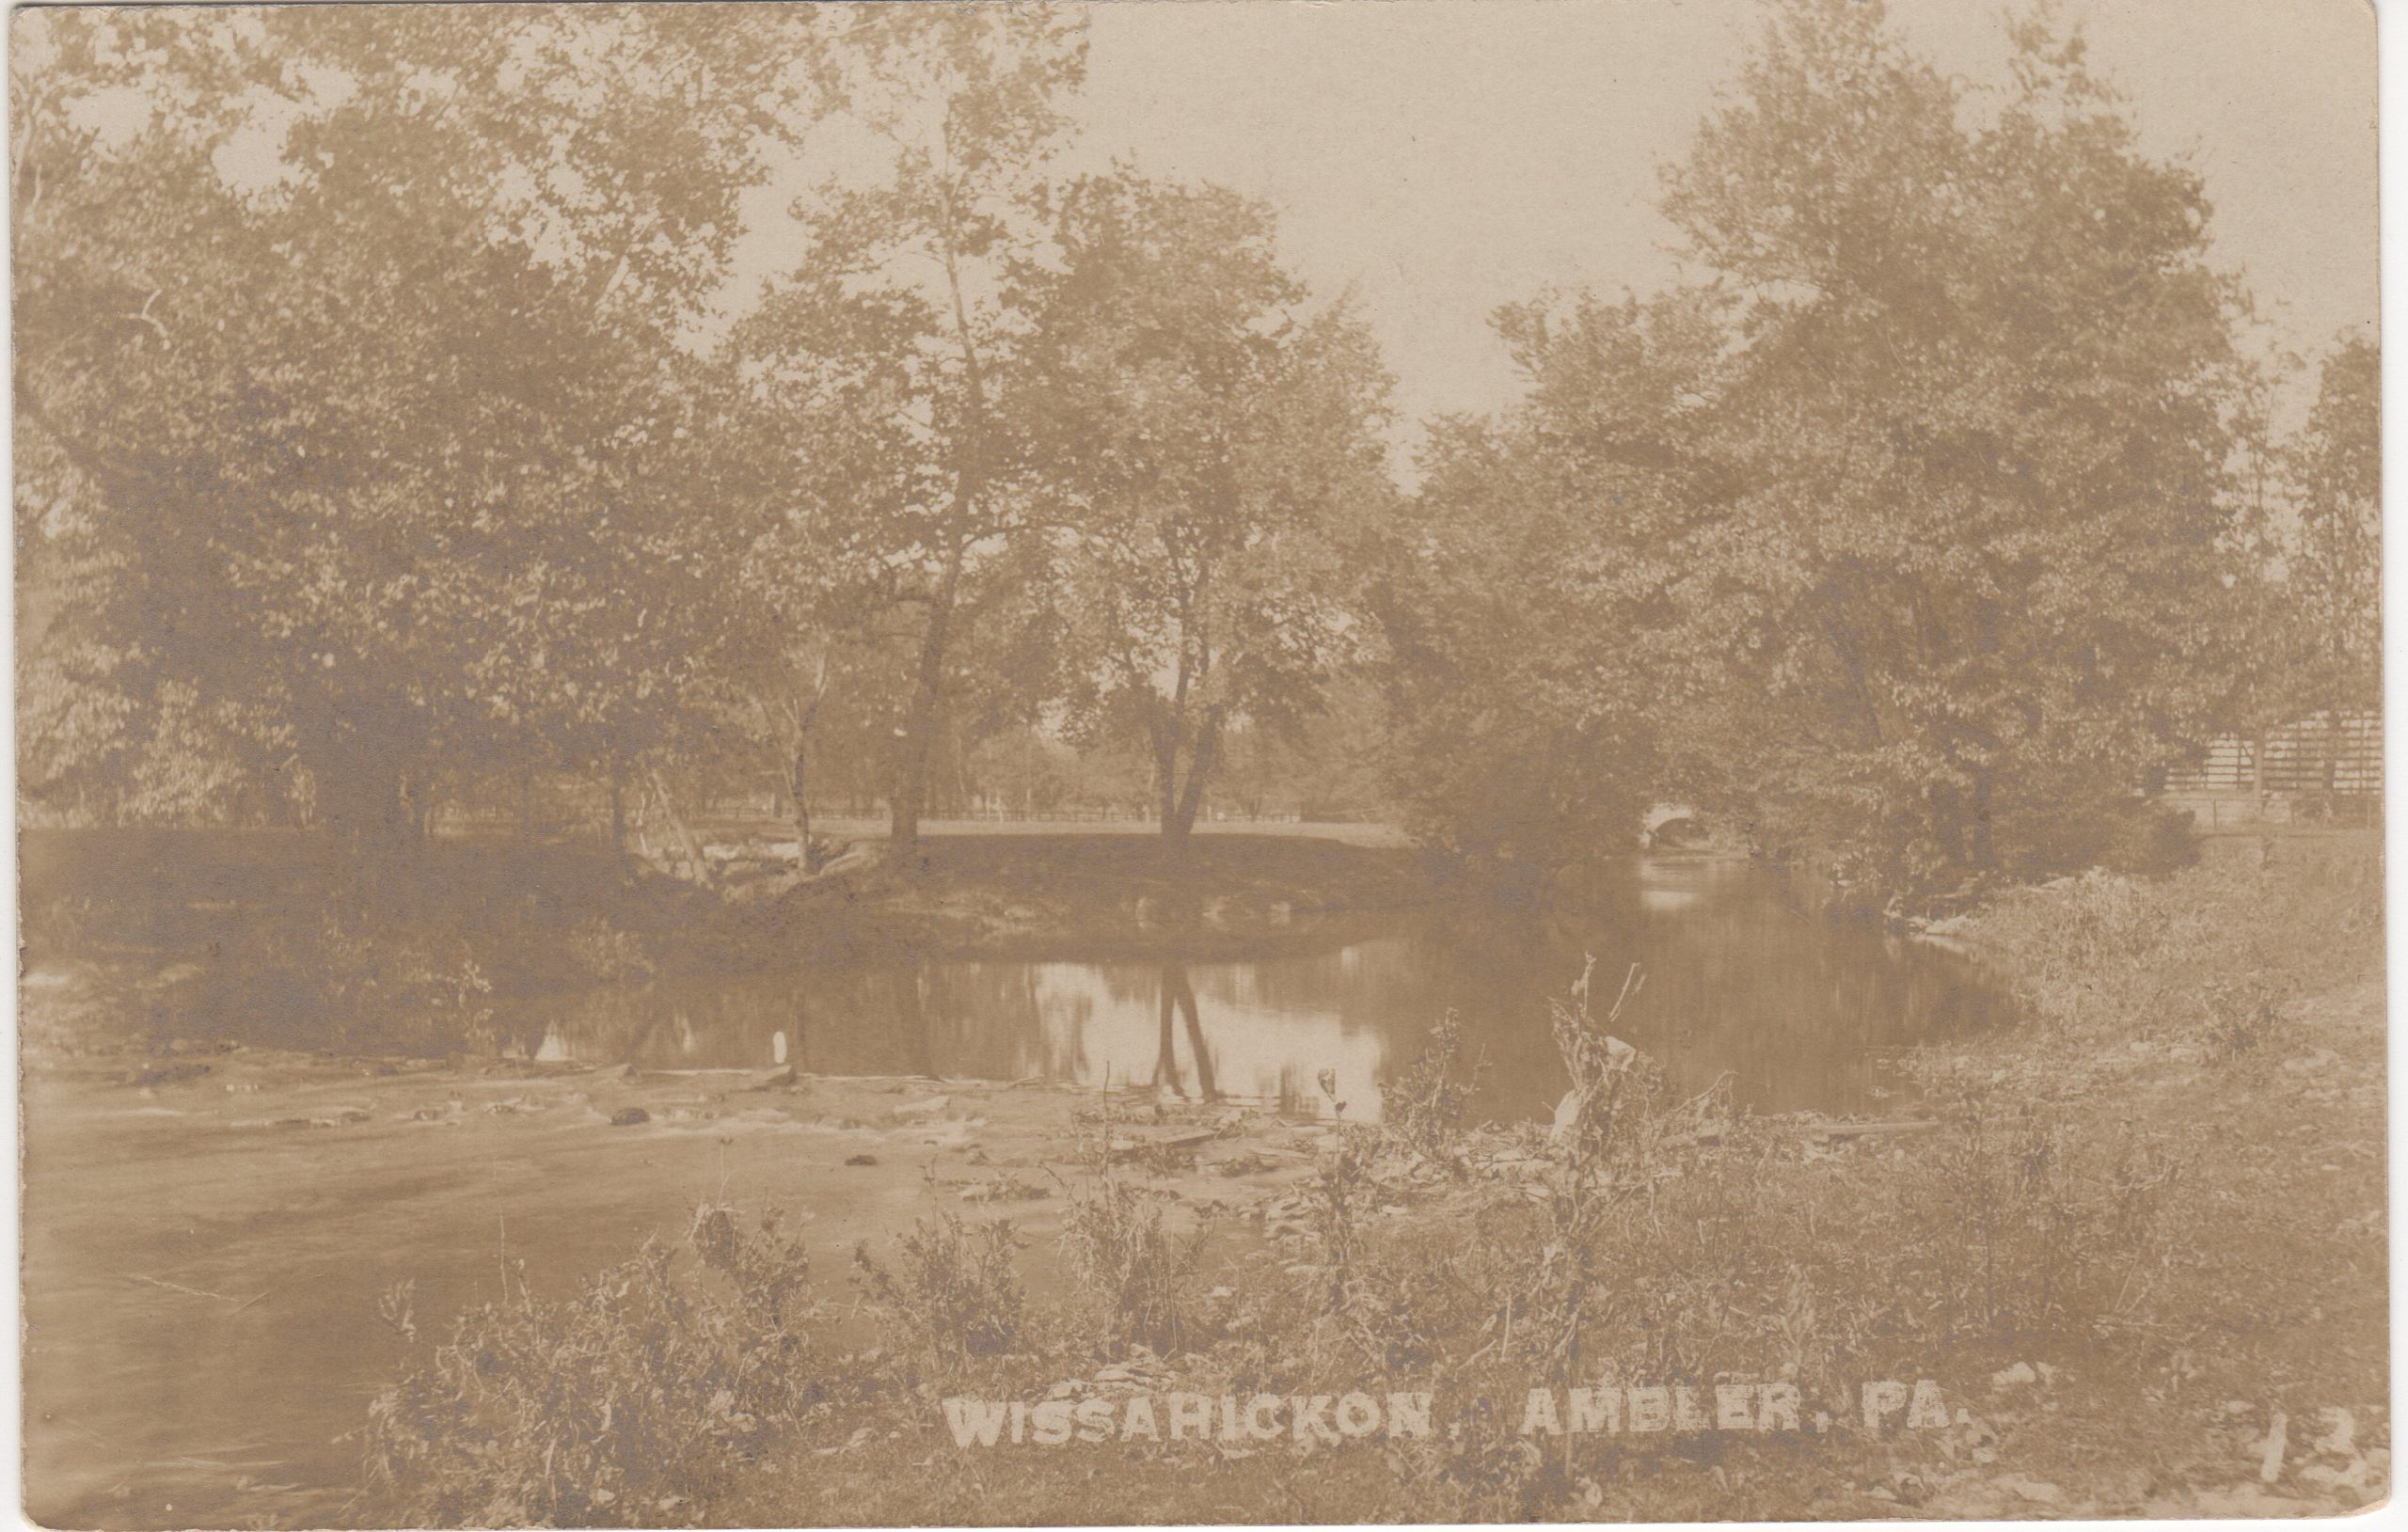 4125.32 Ambler Pa Postcard_Wissahickon Creek